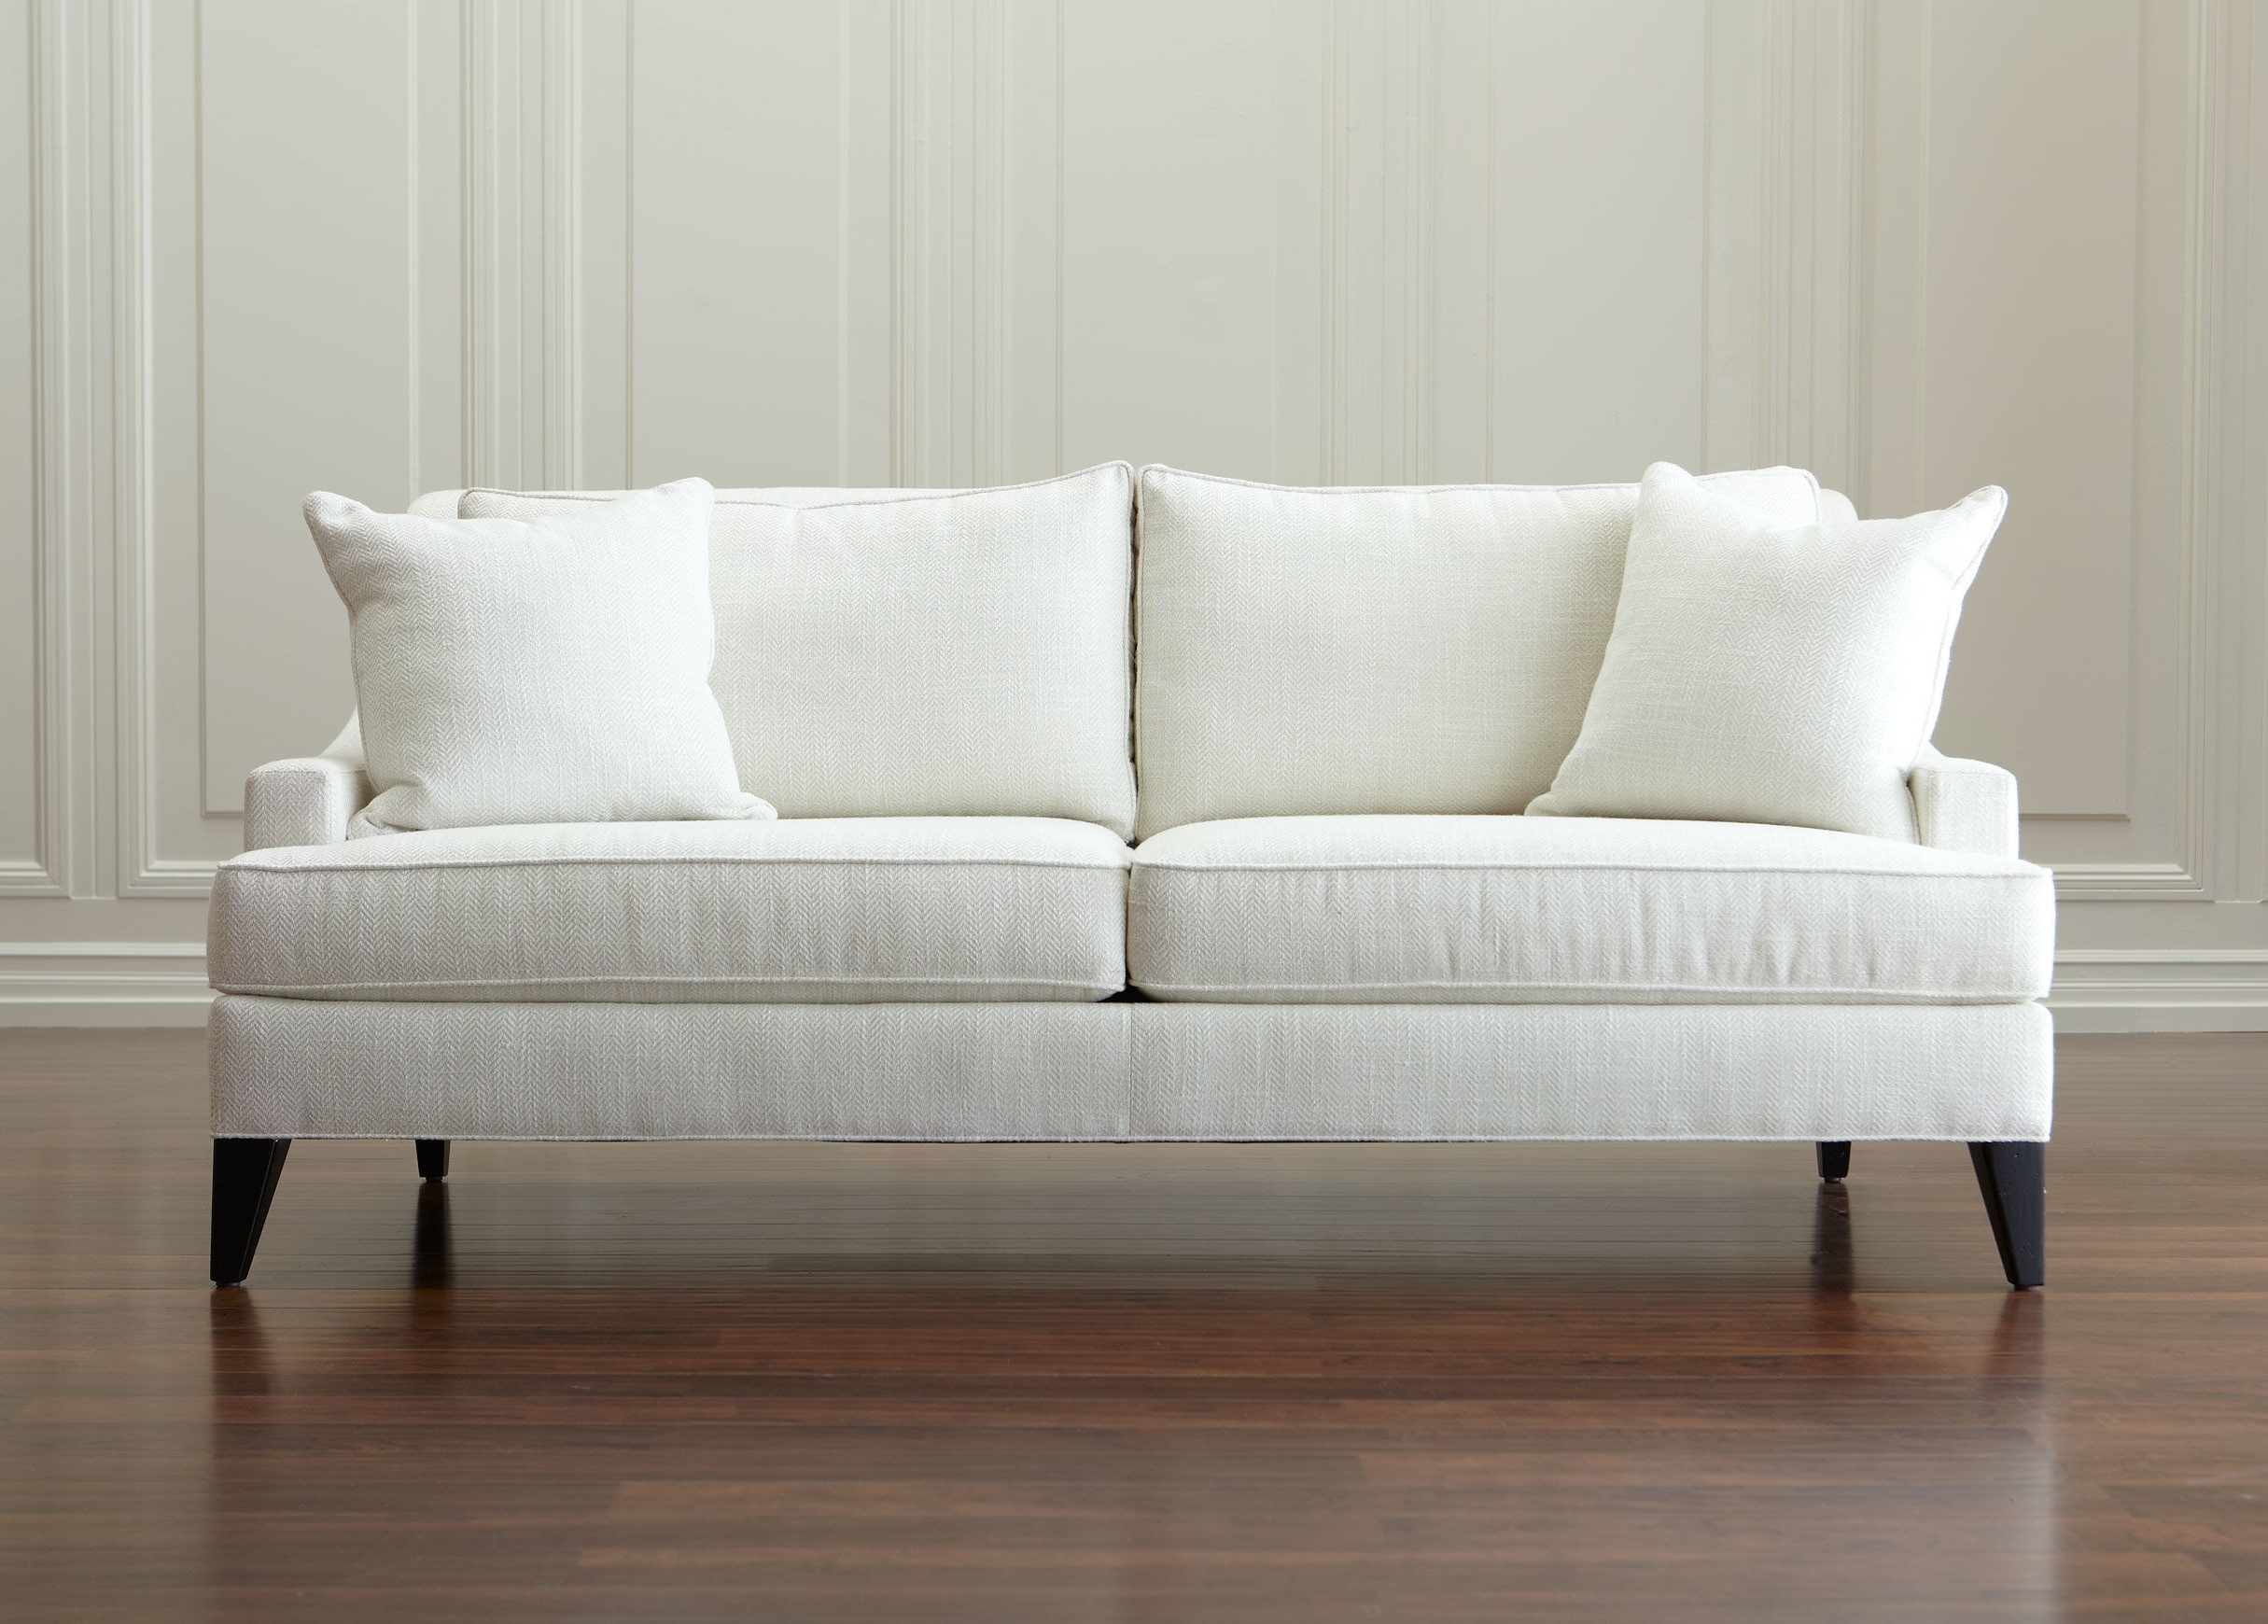 Down Filled Sofas Within Widely Used Furniture : Ethan Allen Down Filled Sofa Luxury Best Ethan Allen (Gallery 13 of 20)